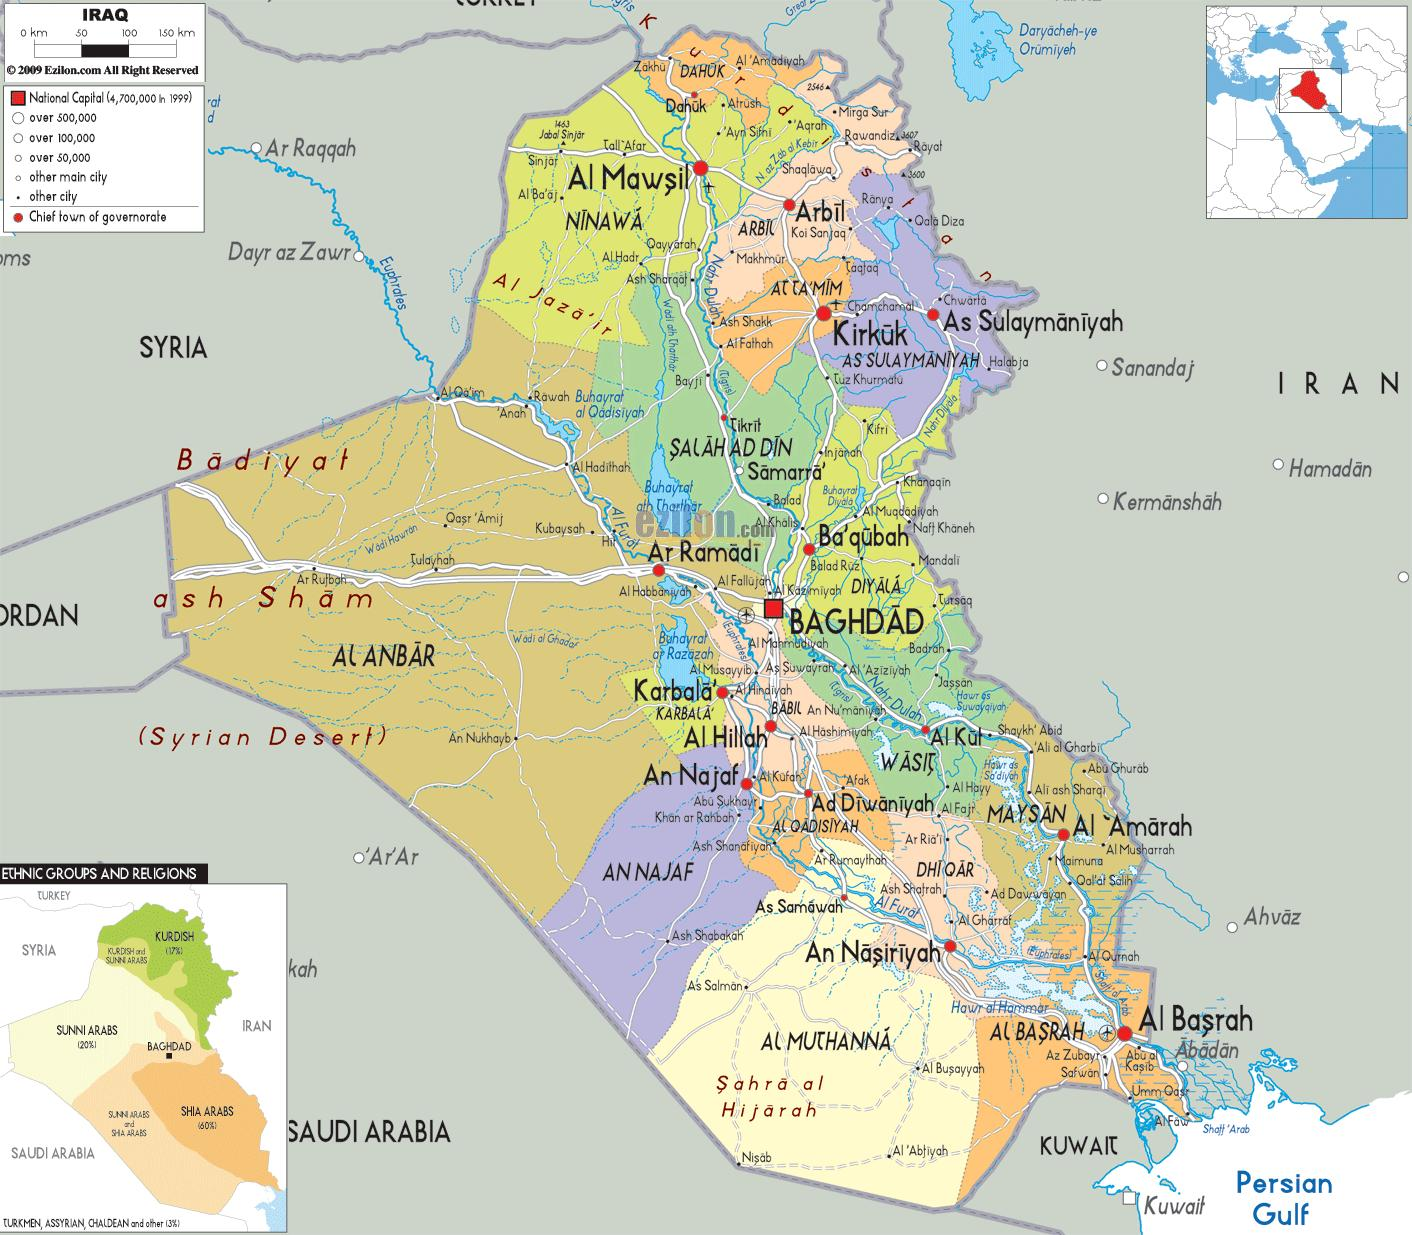 Iraq map - Iraq cities map (Western Asia - Asia)